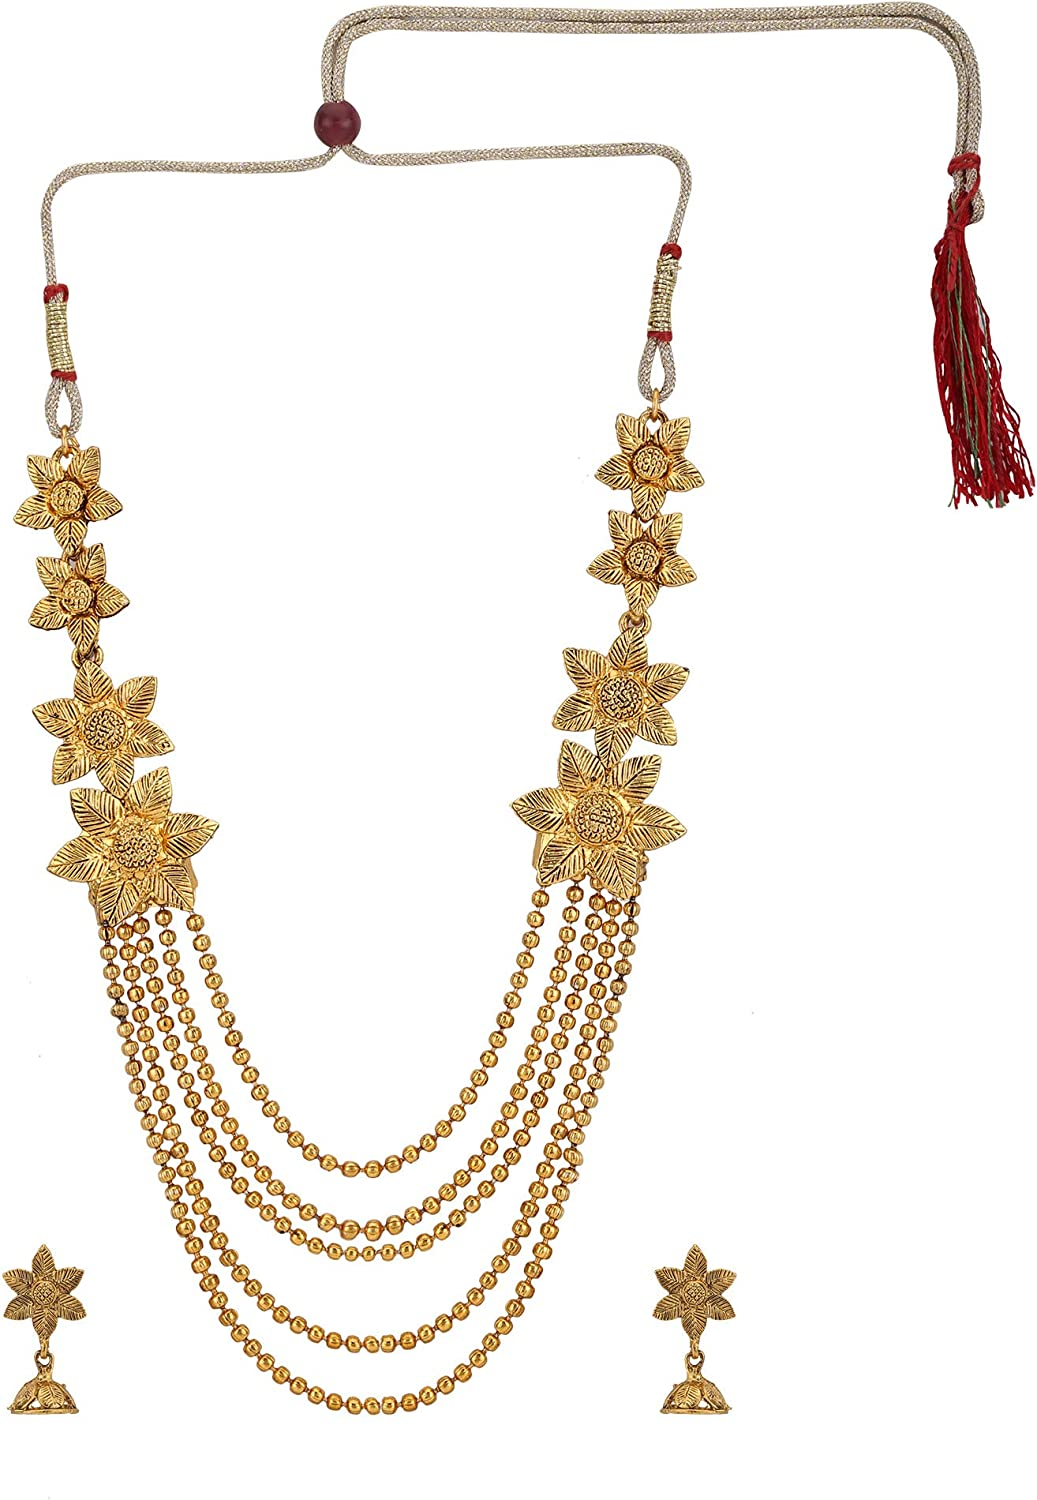 Efulgenz Indian Bollywood Traditional White Red Green Rhinestone Faux Ruby Emerald Heavy Bridal Designer Multistranded Lariat Necklace Set for Women and Girls (Style 4)